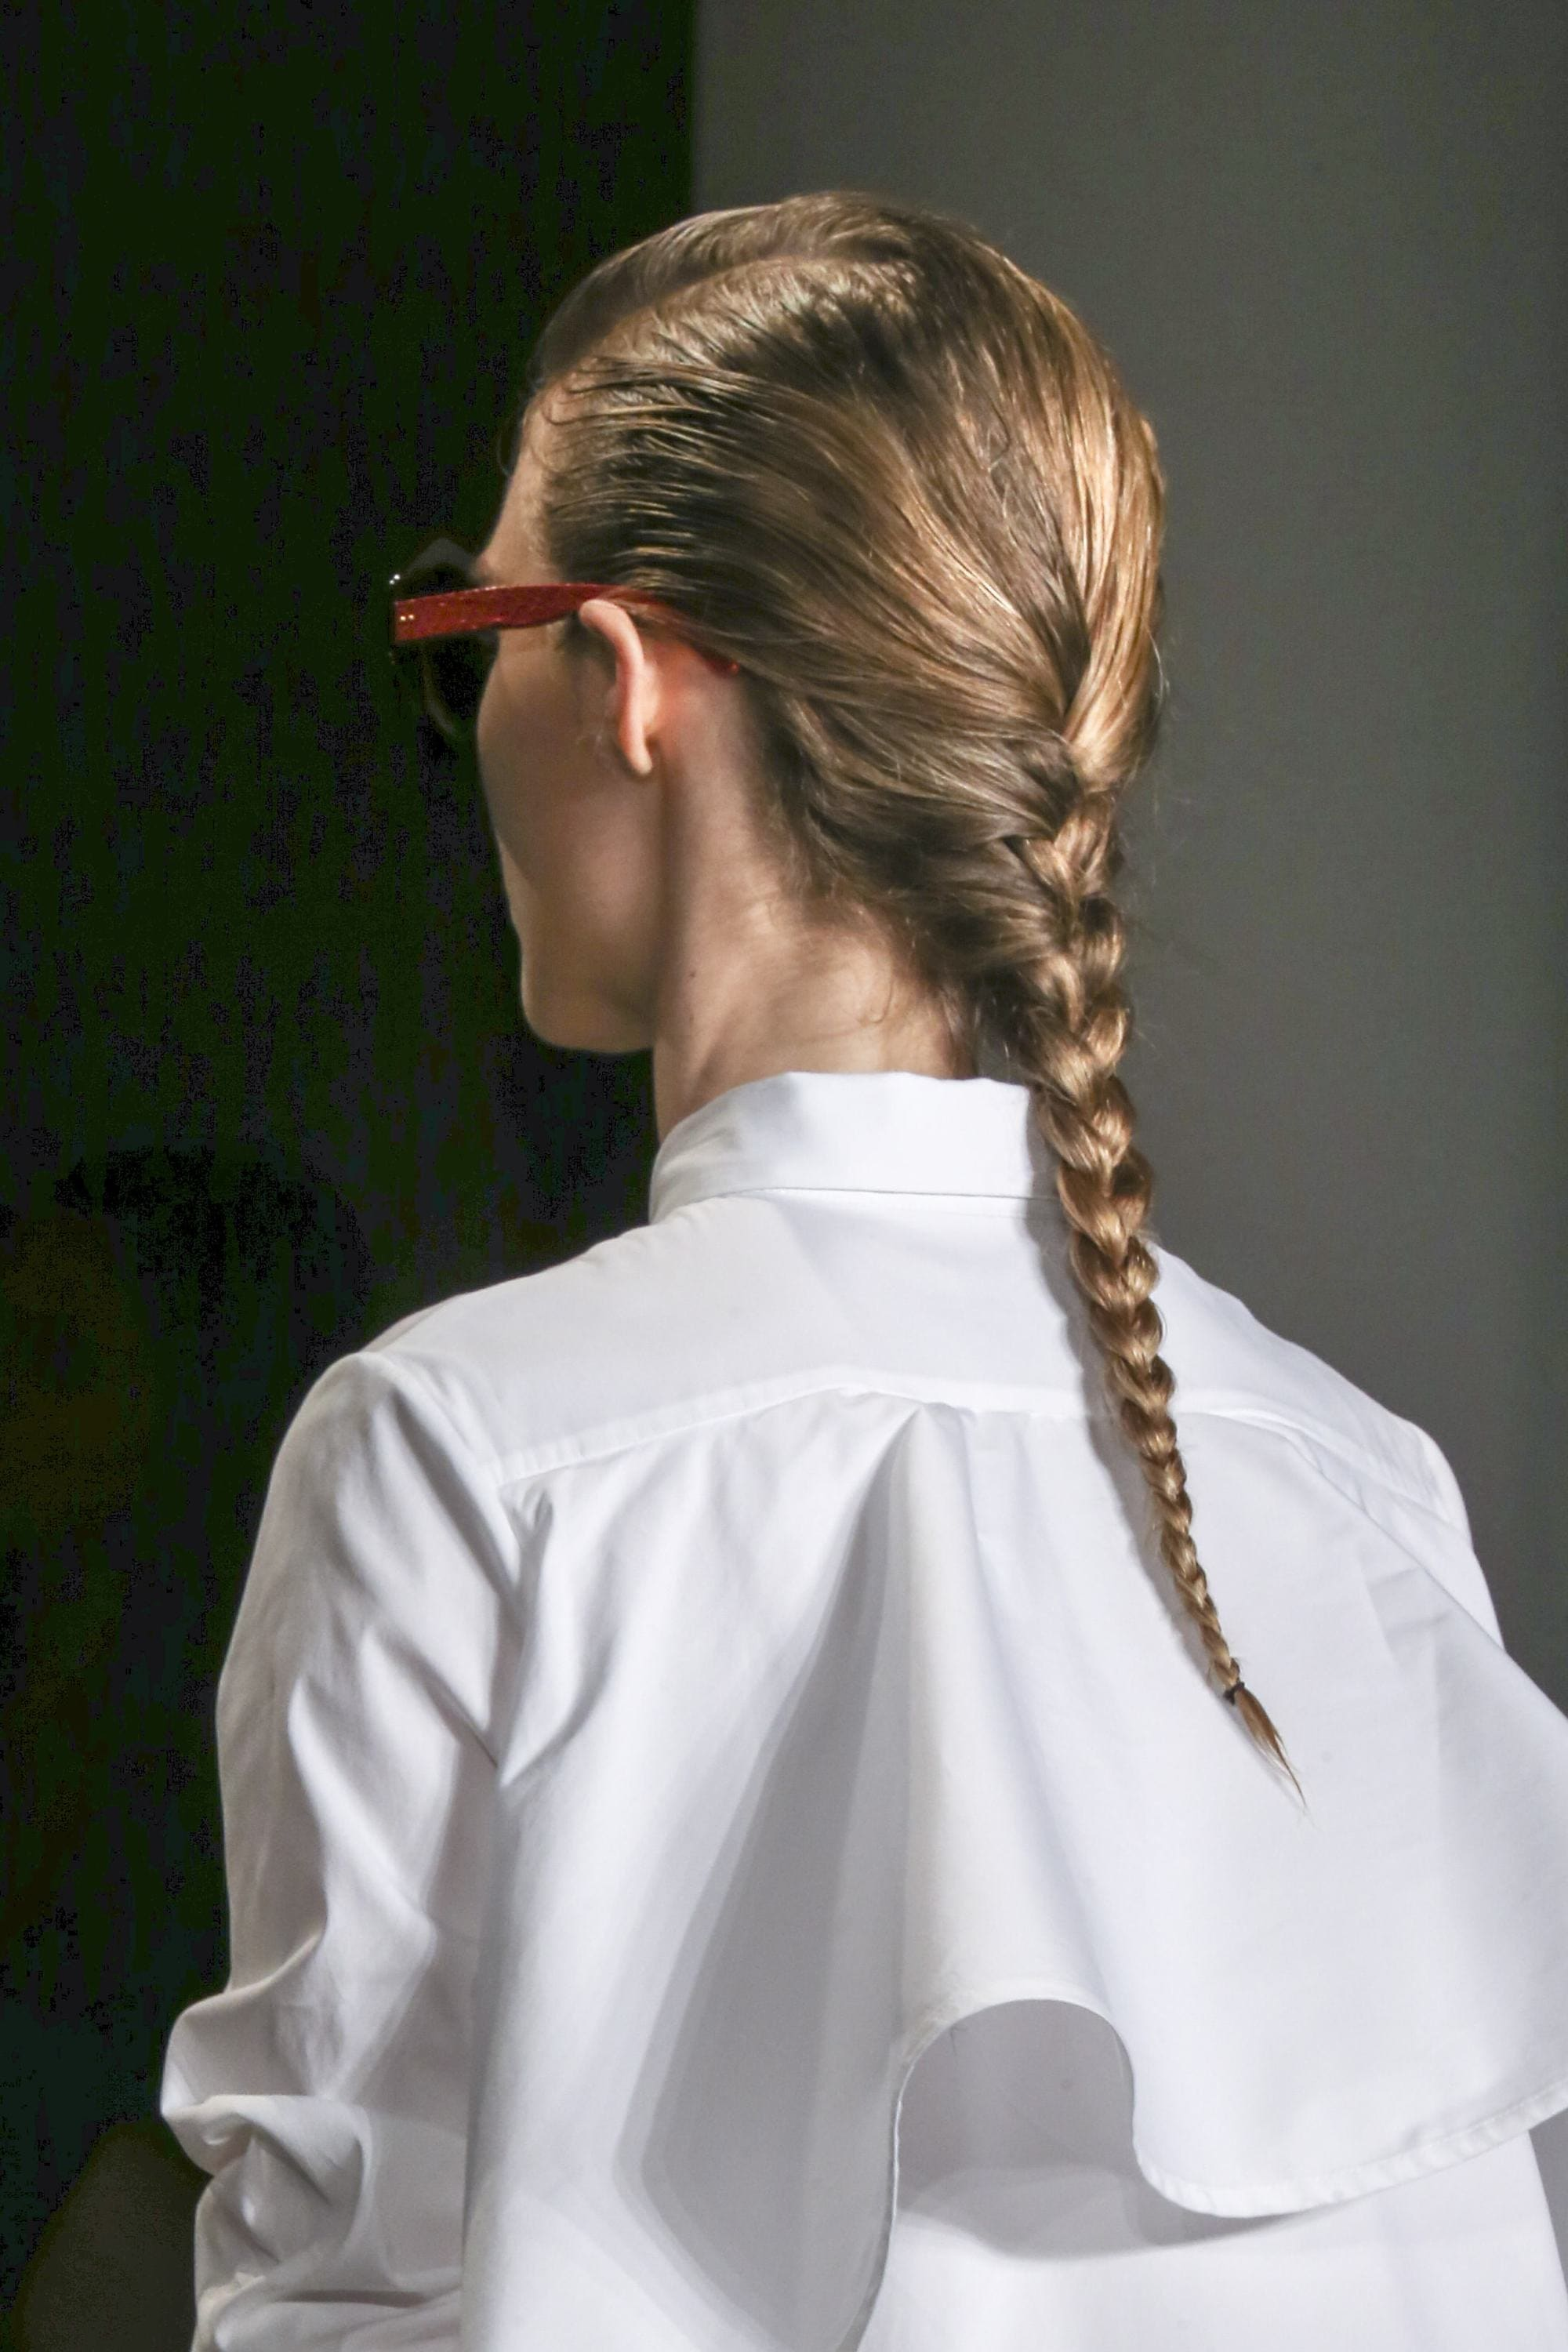 work hairstyles for long hair: back view of model on runway with long dark blonde hair styled in a single braid wearing white collared shirt